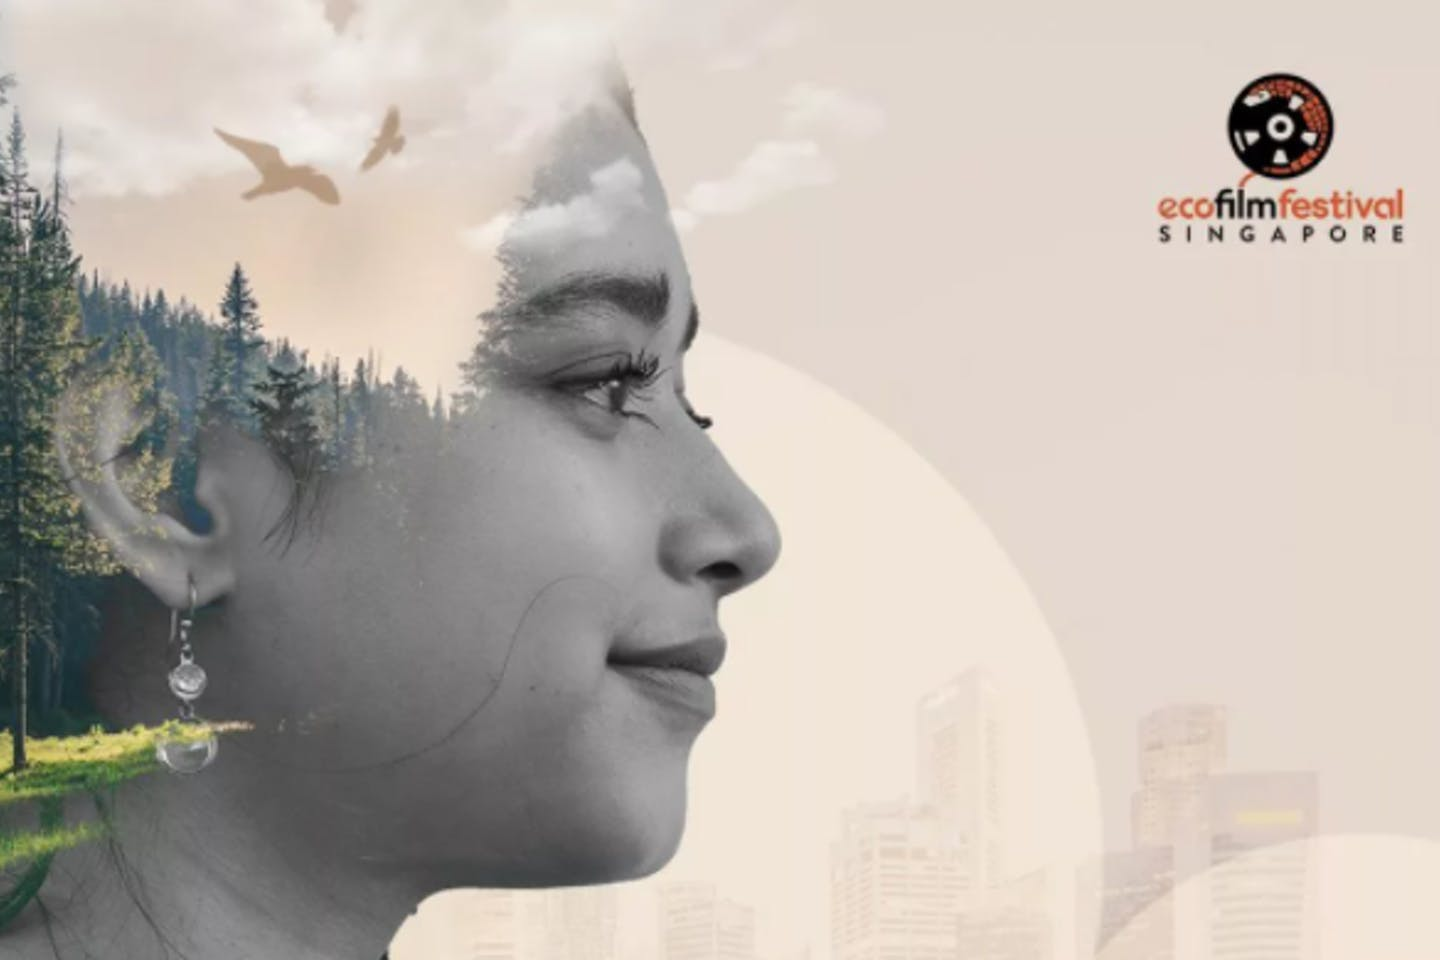 The Singapore Eco Film Festival 2020: Are you ready to celebrate and accelerate eco solutions?